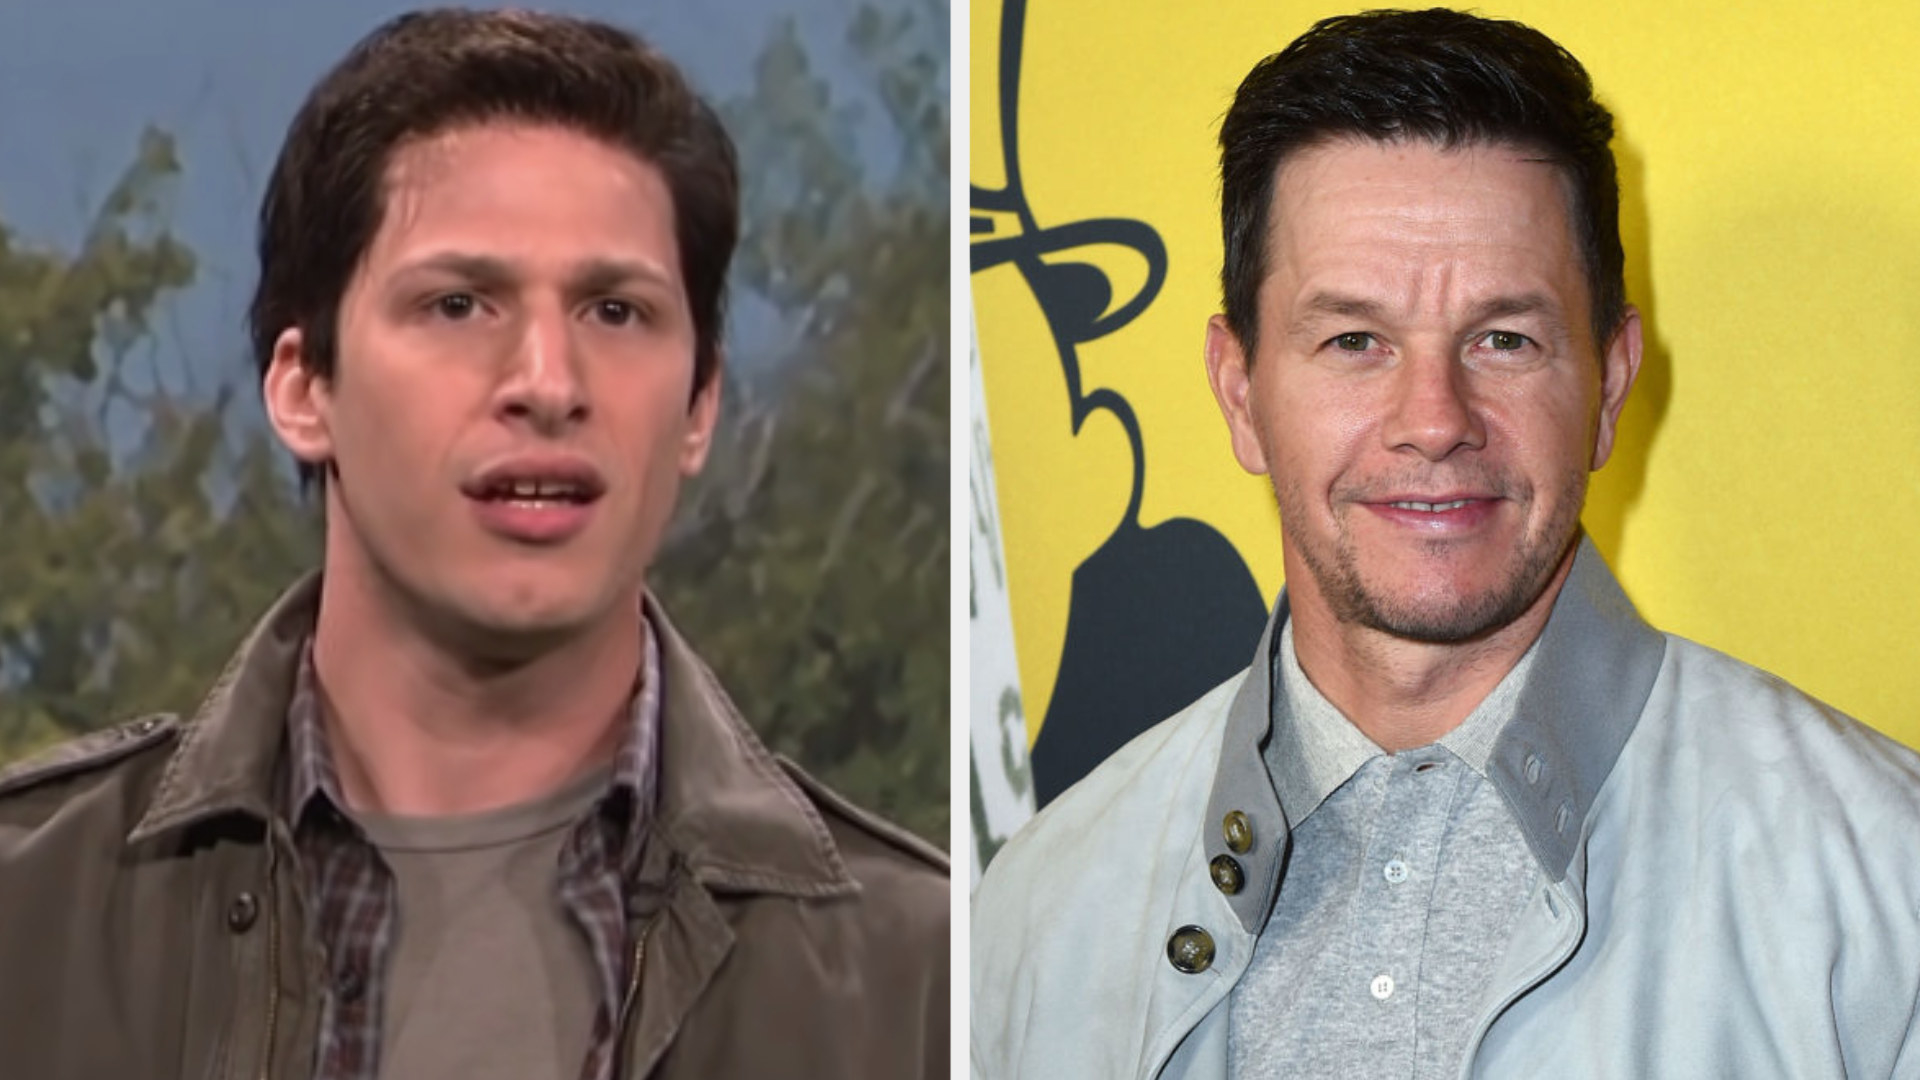 Andy Samberg dressed in a collared shirt under a coat with short brown hair side by side with Mark Wahlberg in a collared shirt under a coat